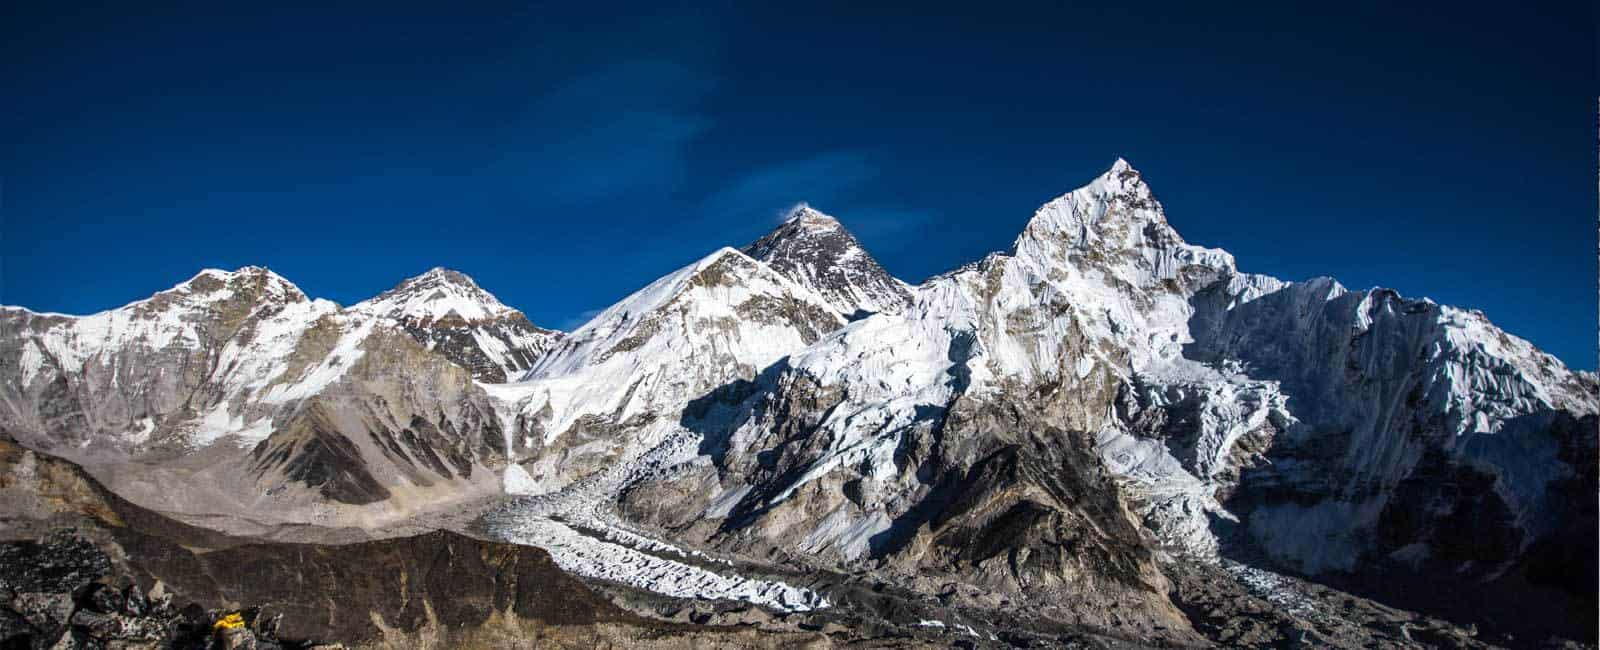 14 Days Everest Base Camp Trek Itinerary